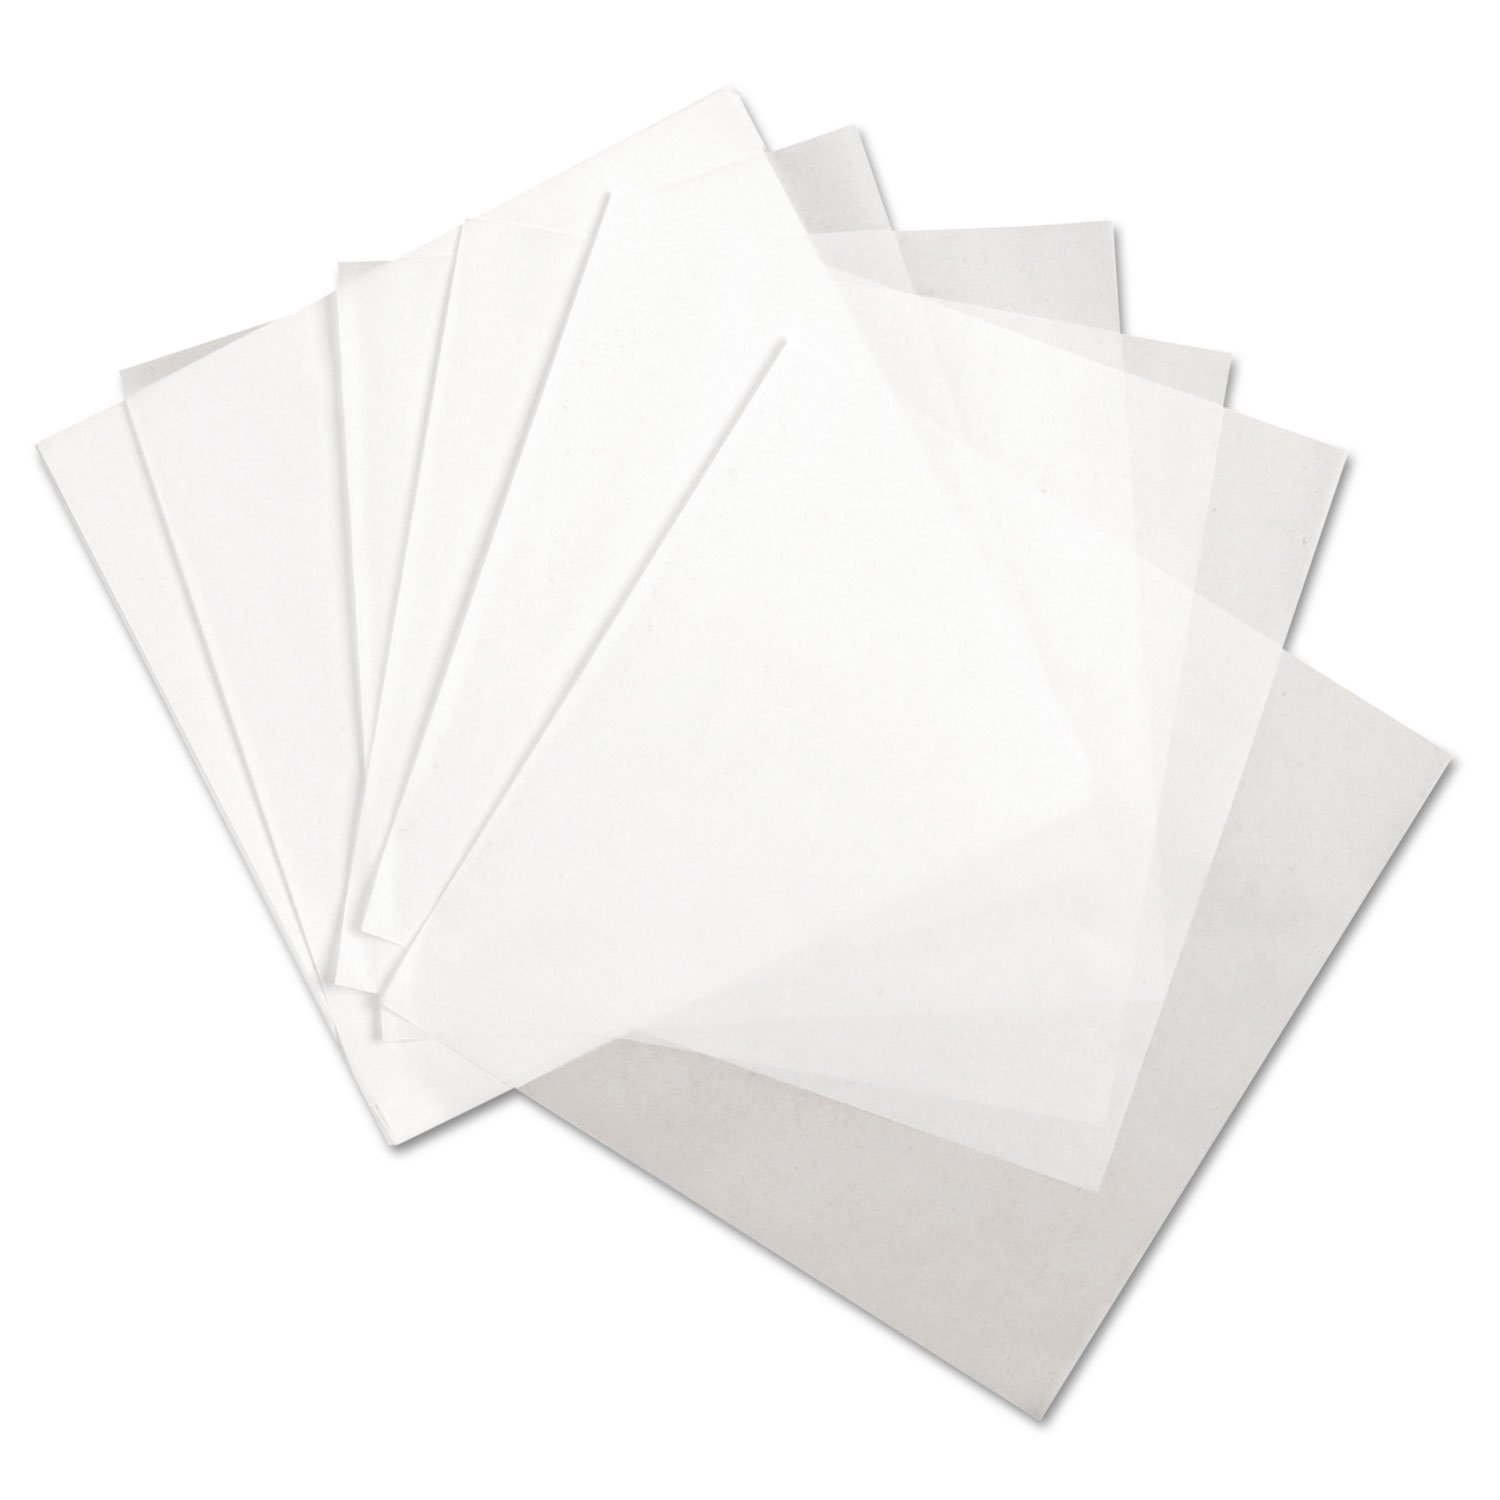 purchase deli wrap wax paper flat sheets and other food wrap